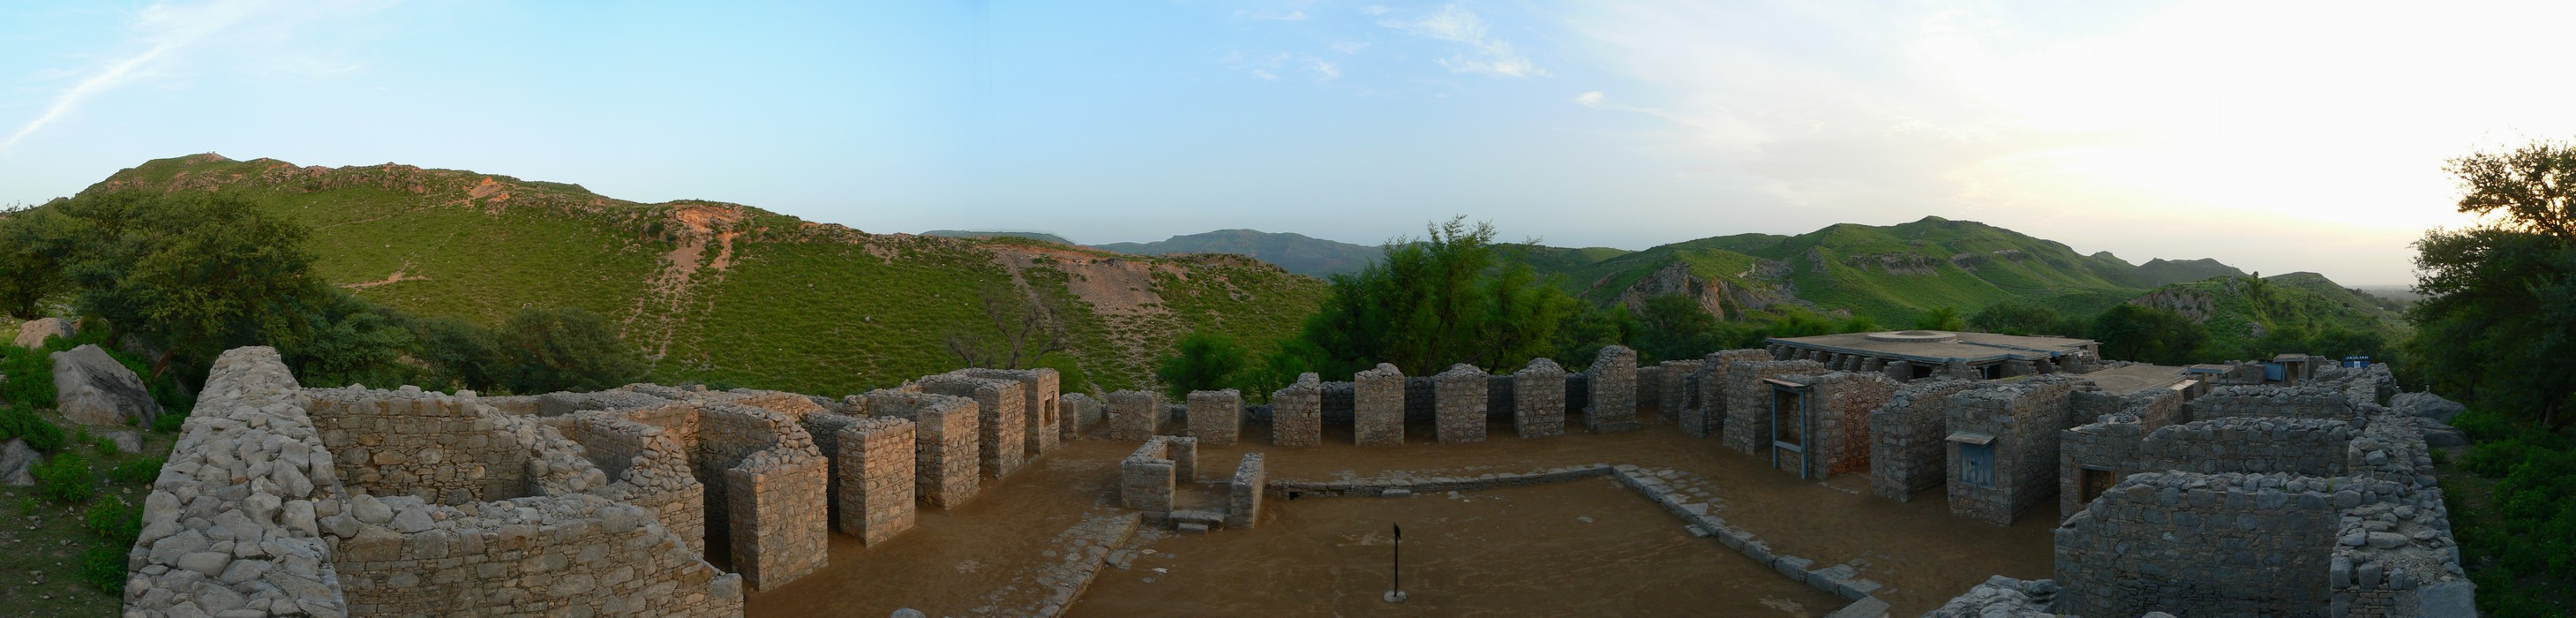 Panorama at Jaulian   Ancient Buddhist Monastery   Taxila2C Pakistan   566 31 - The Real Pakistan